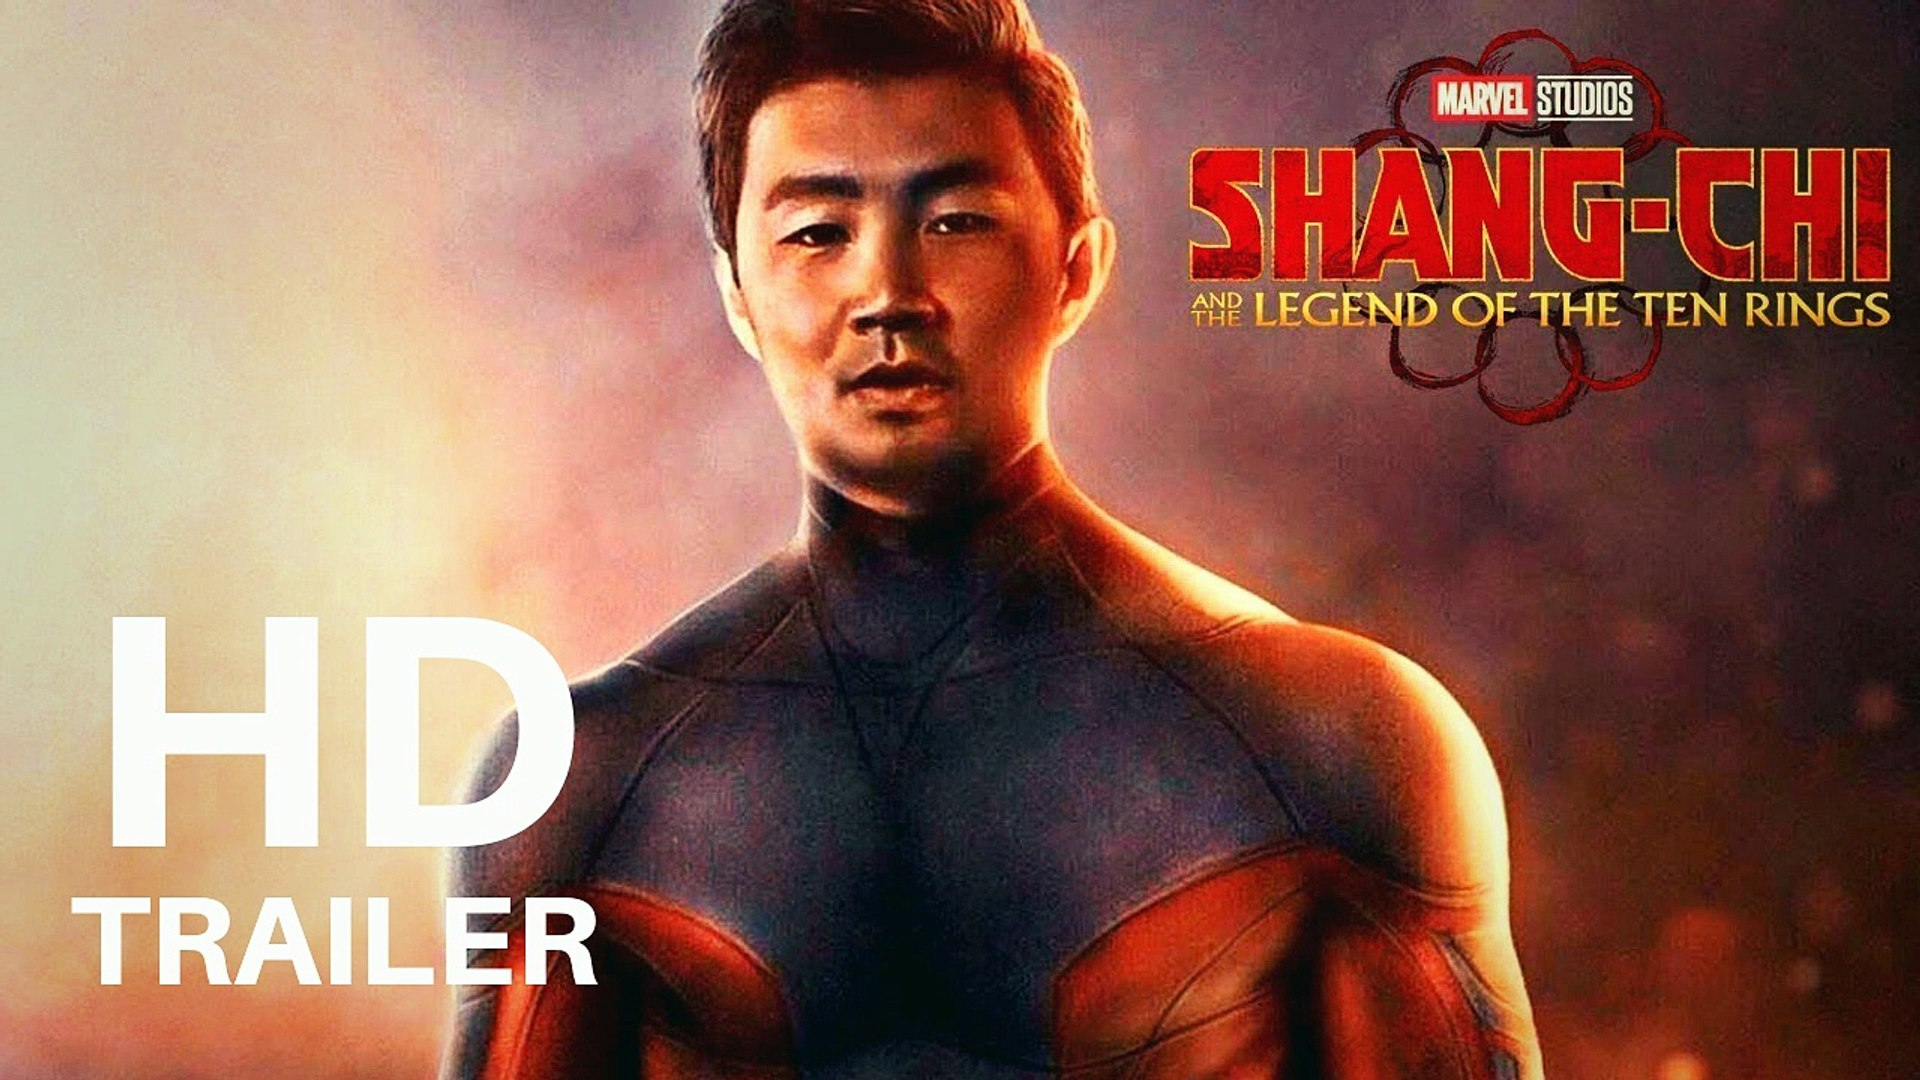 Marvel Studios Shang Chi The Legend Of Ten Rings First Look Teaser Trailer Concept 2021 Video Dailymotion